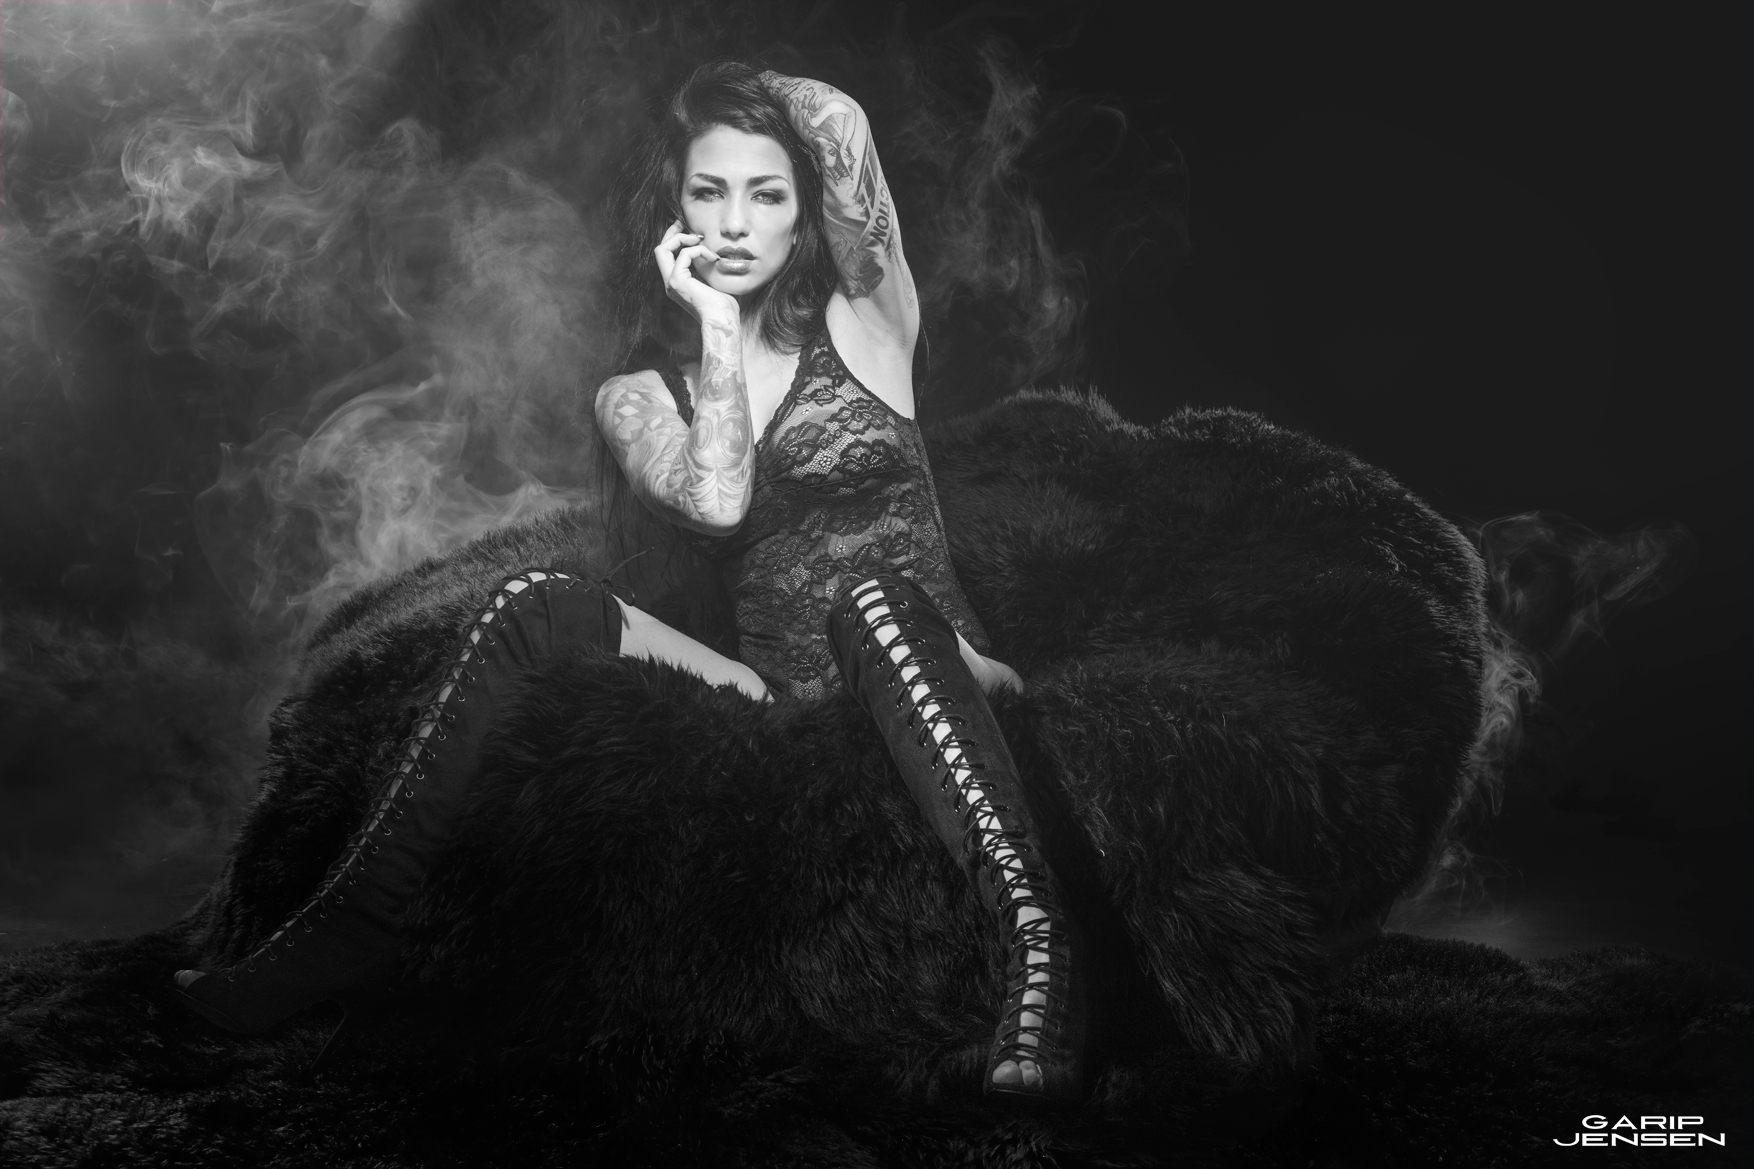 sexy tattooed model, in black and white, sitting on a fur sofa in a smoky studio